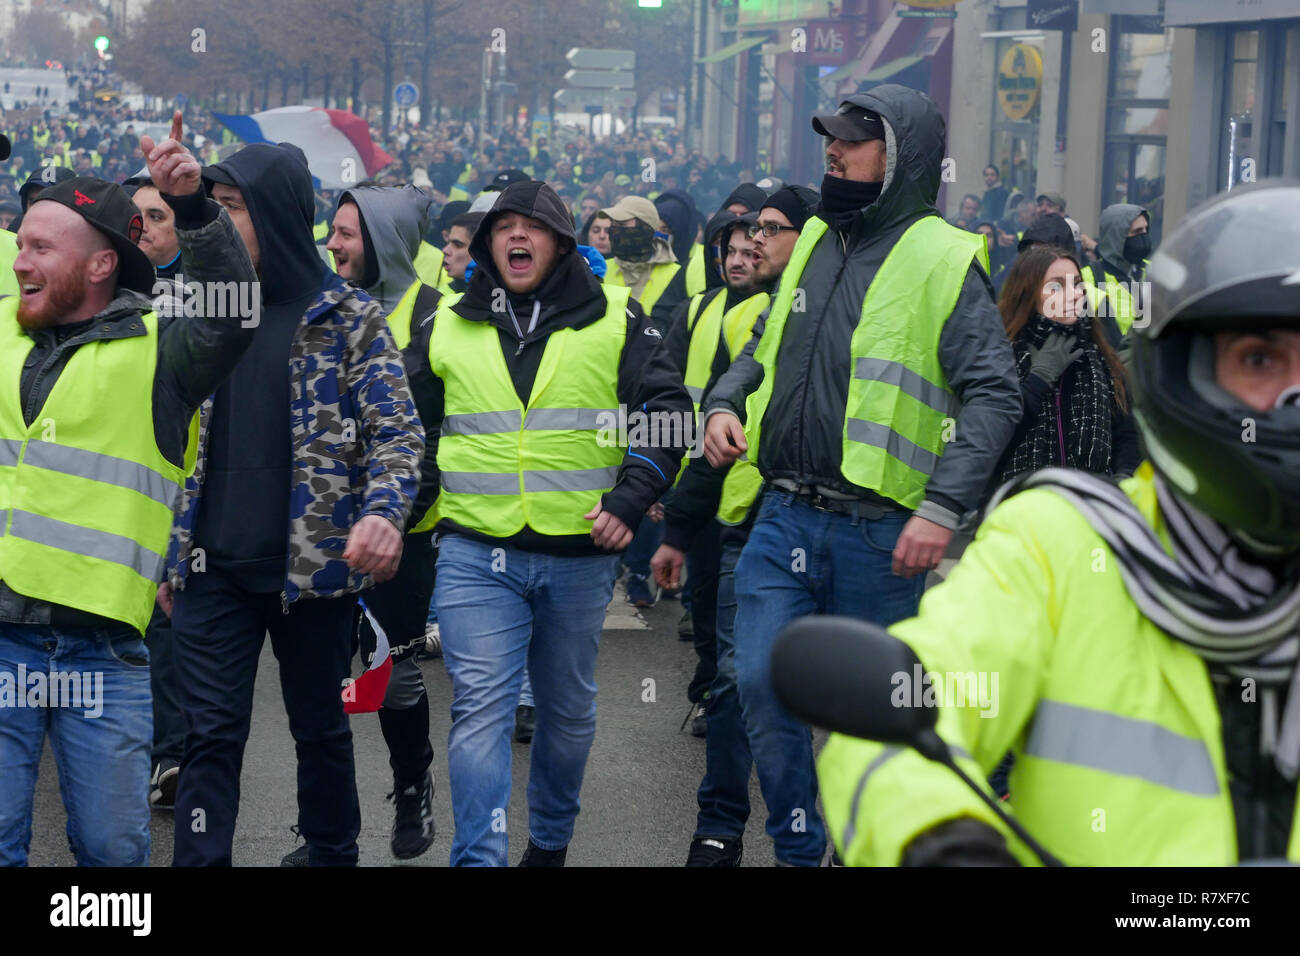 'Yellow Jackets' protesters face Riot Police forces, Lyon, France - Stock Image